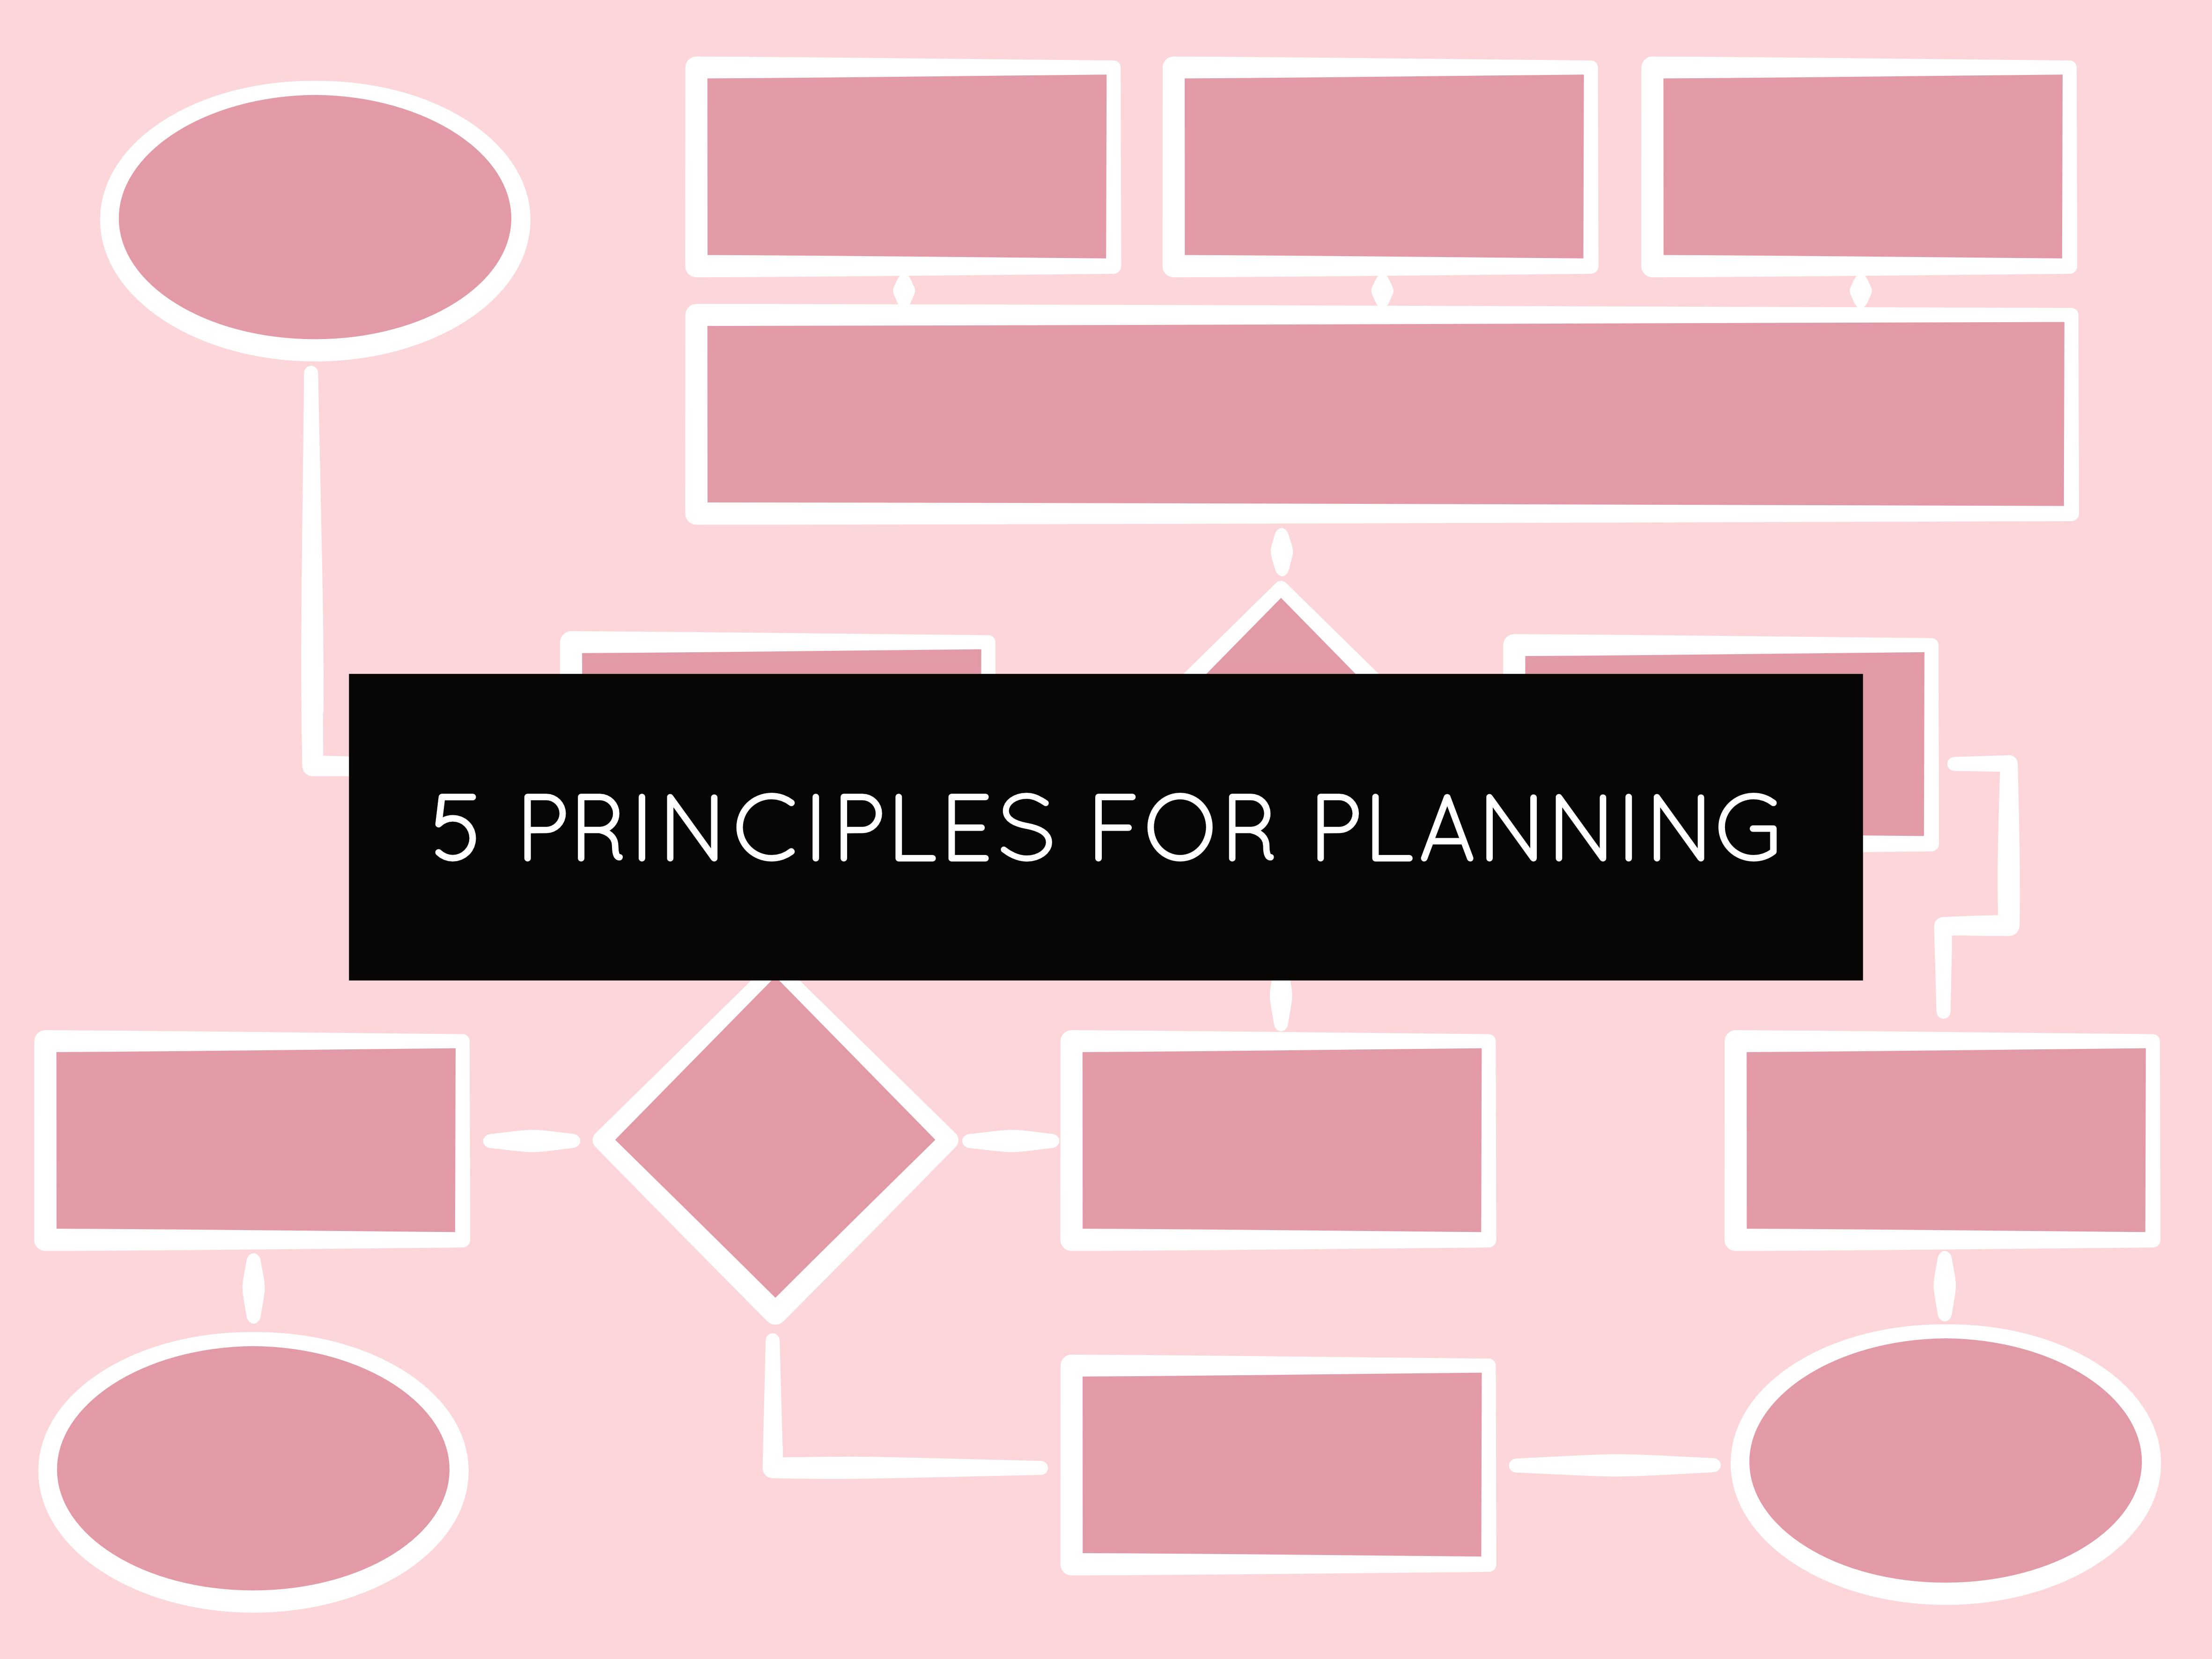 5 principles for planning